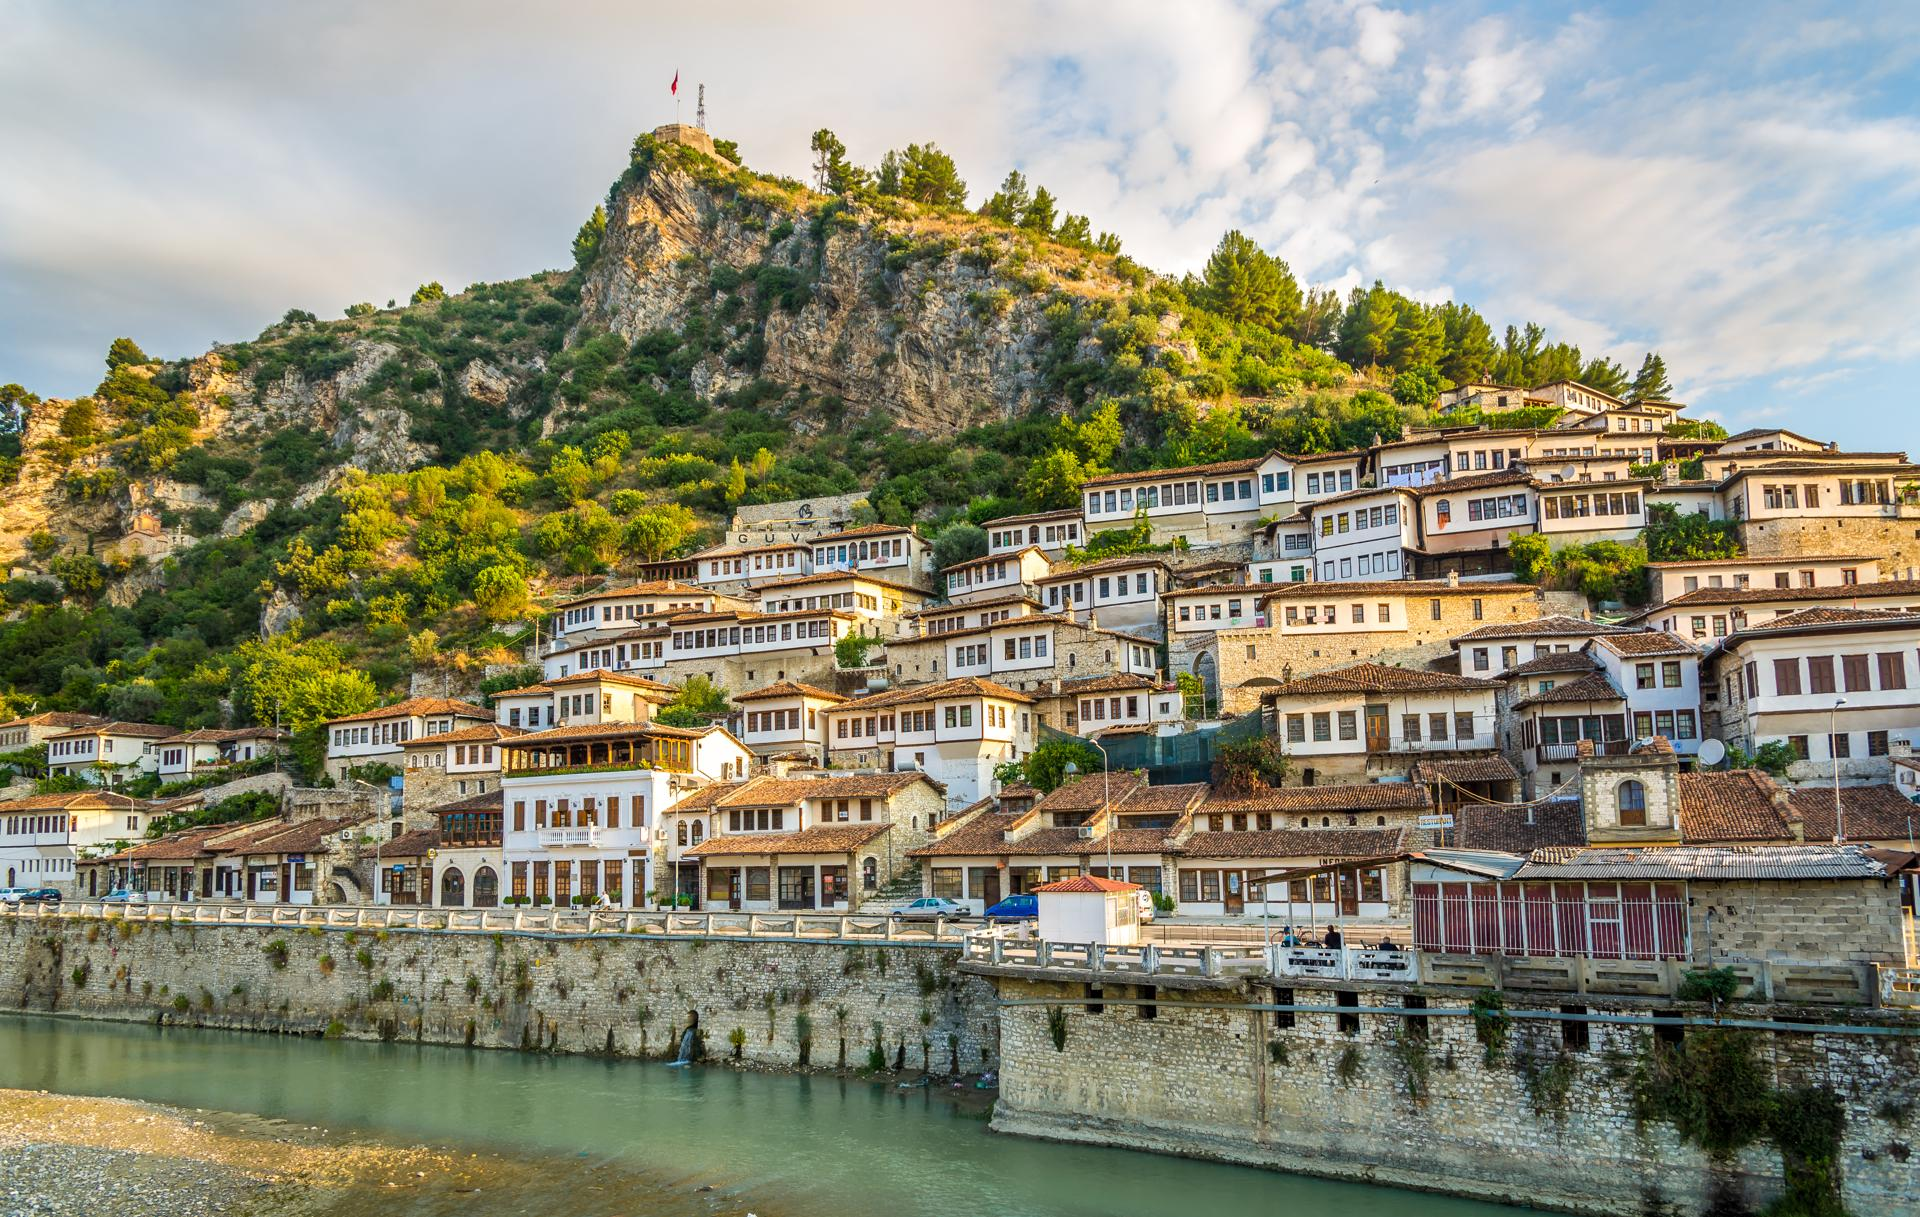 Berat-Old-City-Albania.jpg